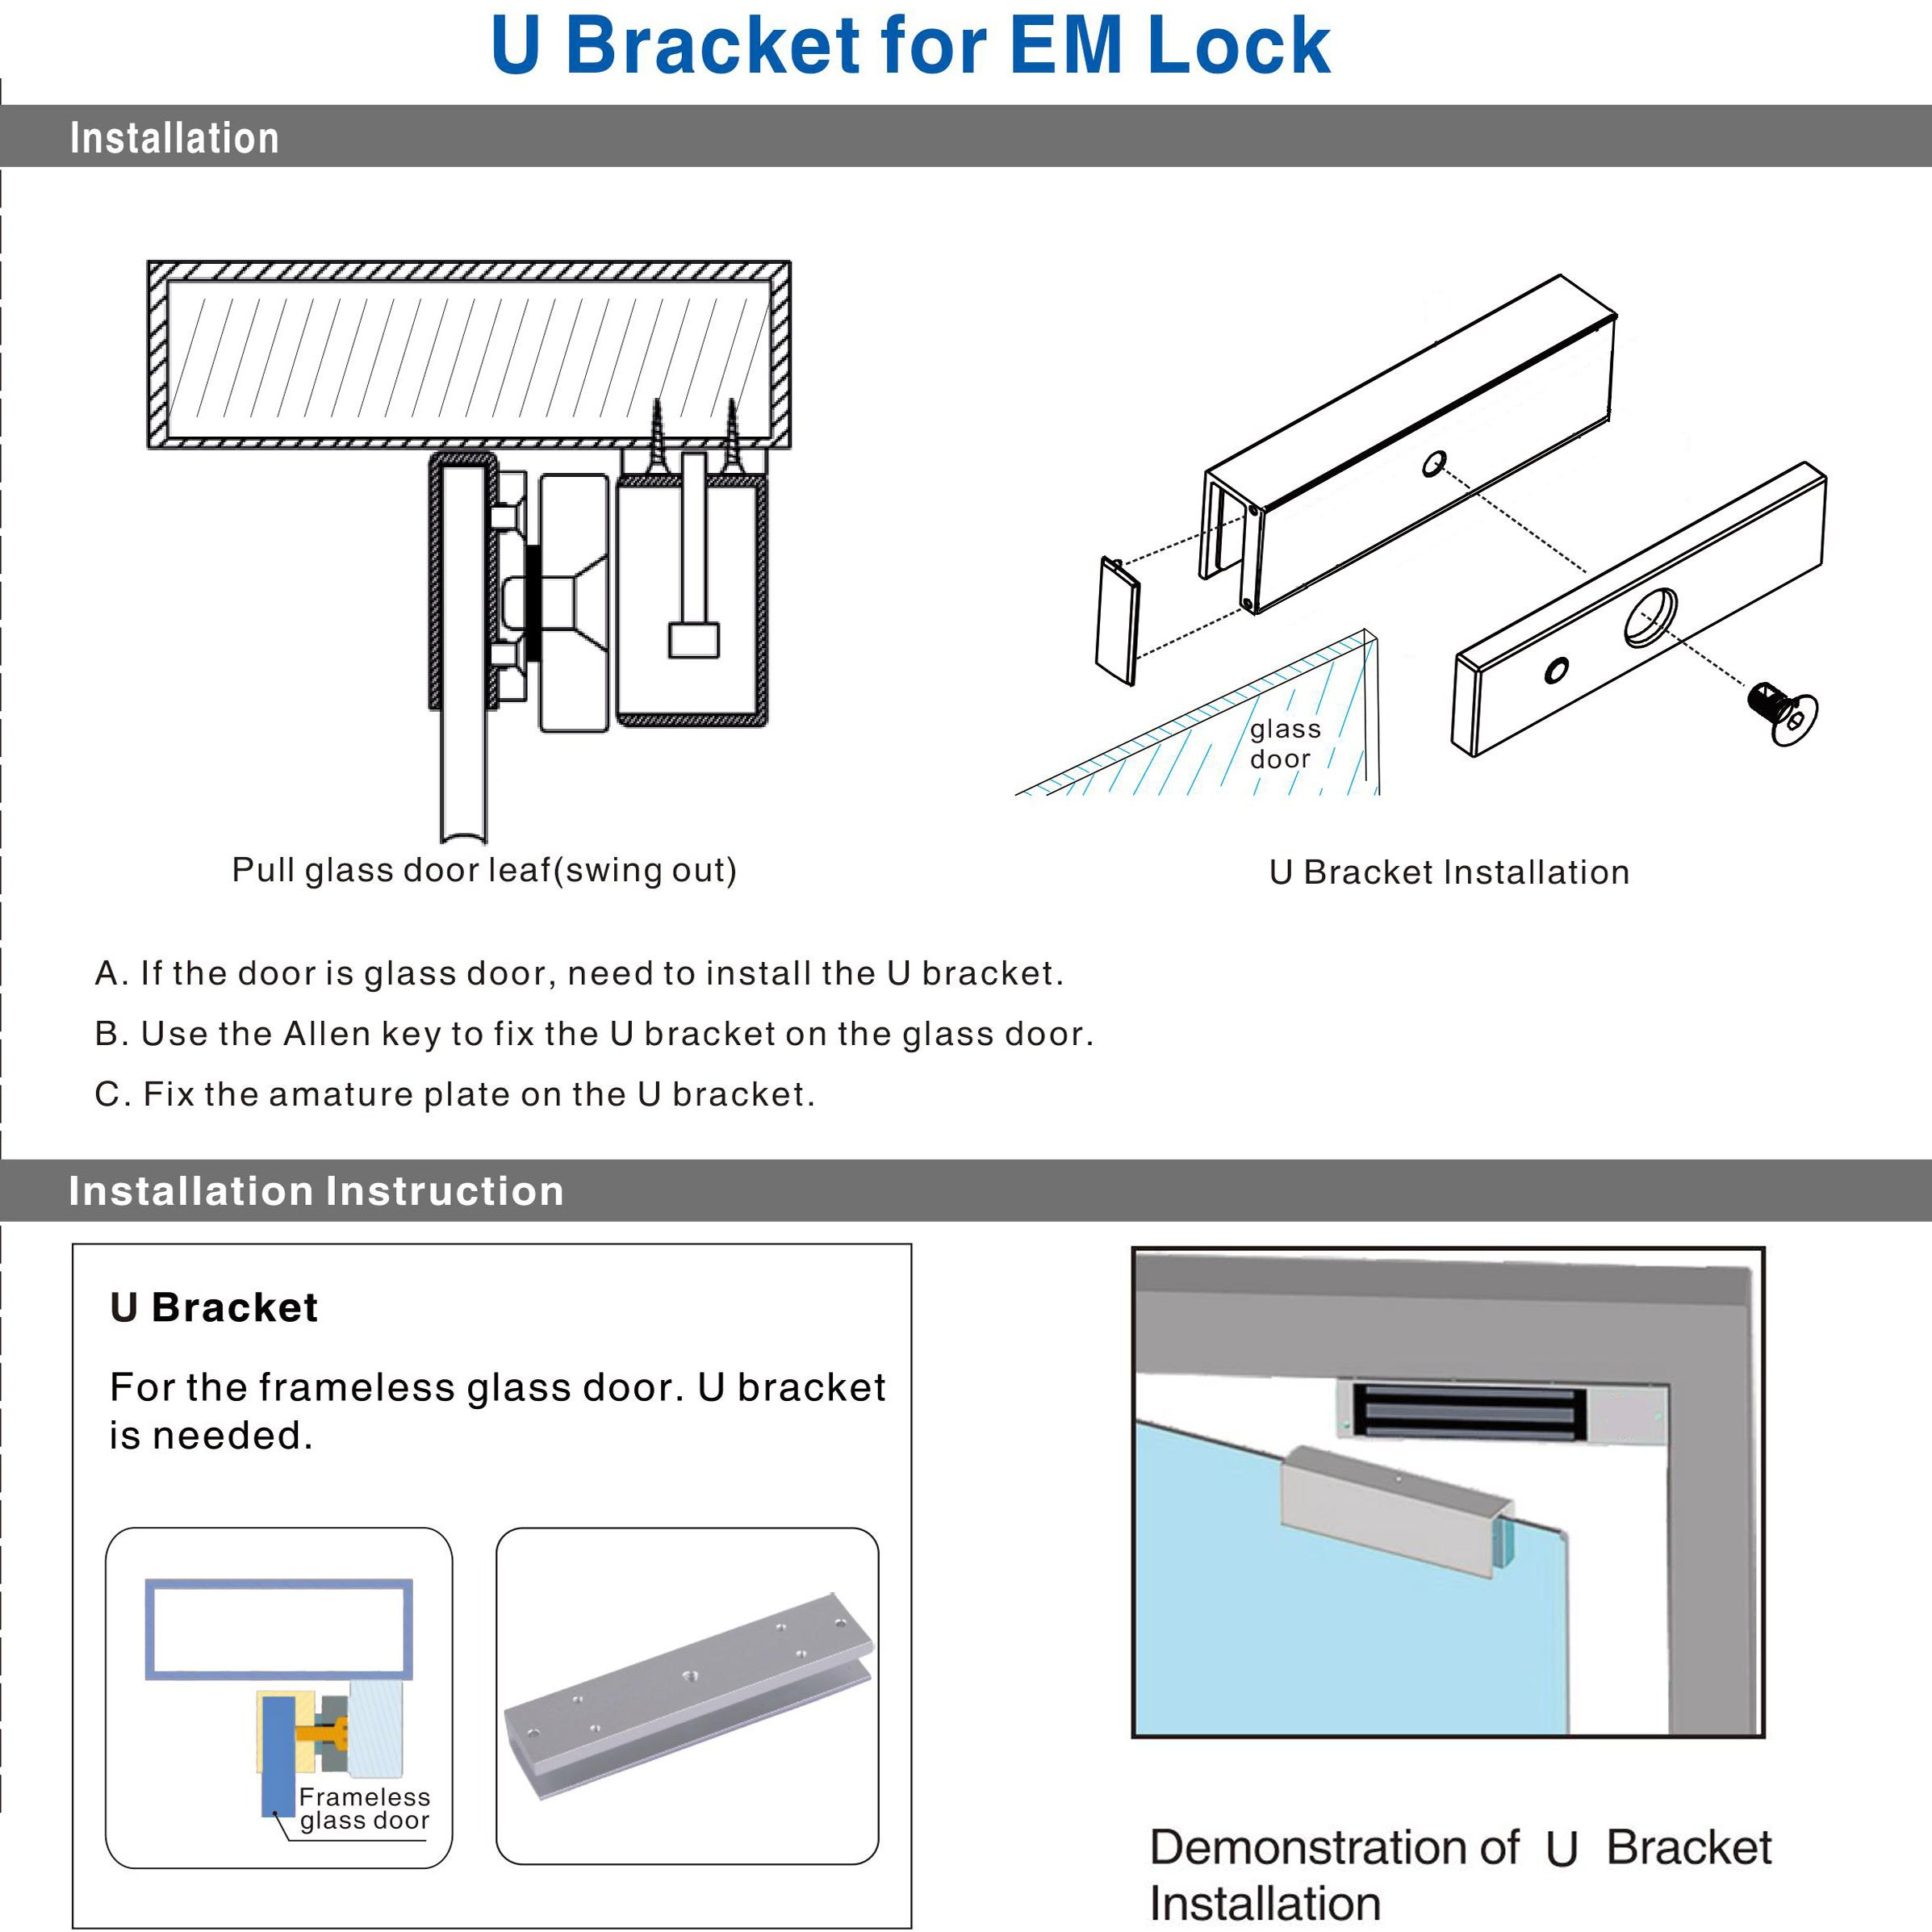 UHPPOTE Aluminum Alloy U-Shape Bracket For 600lbs Magnetic Lock by UHPPOTE (Image #3)